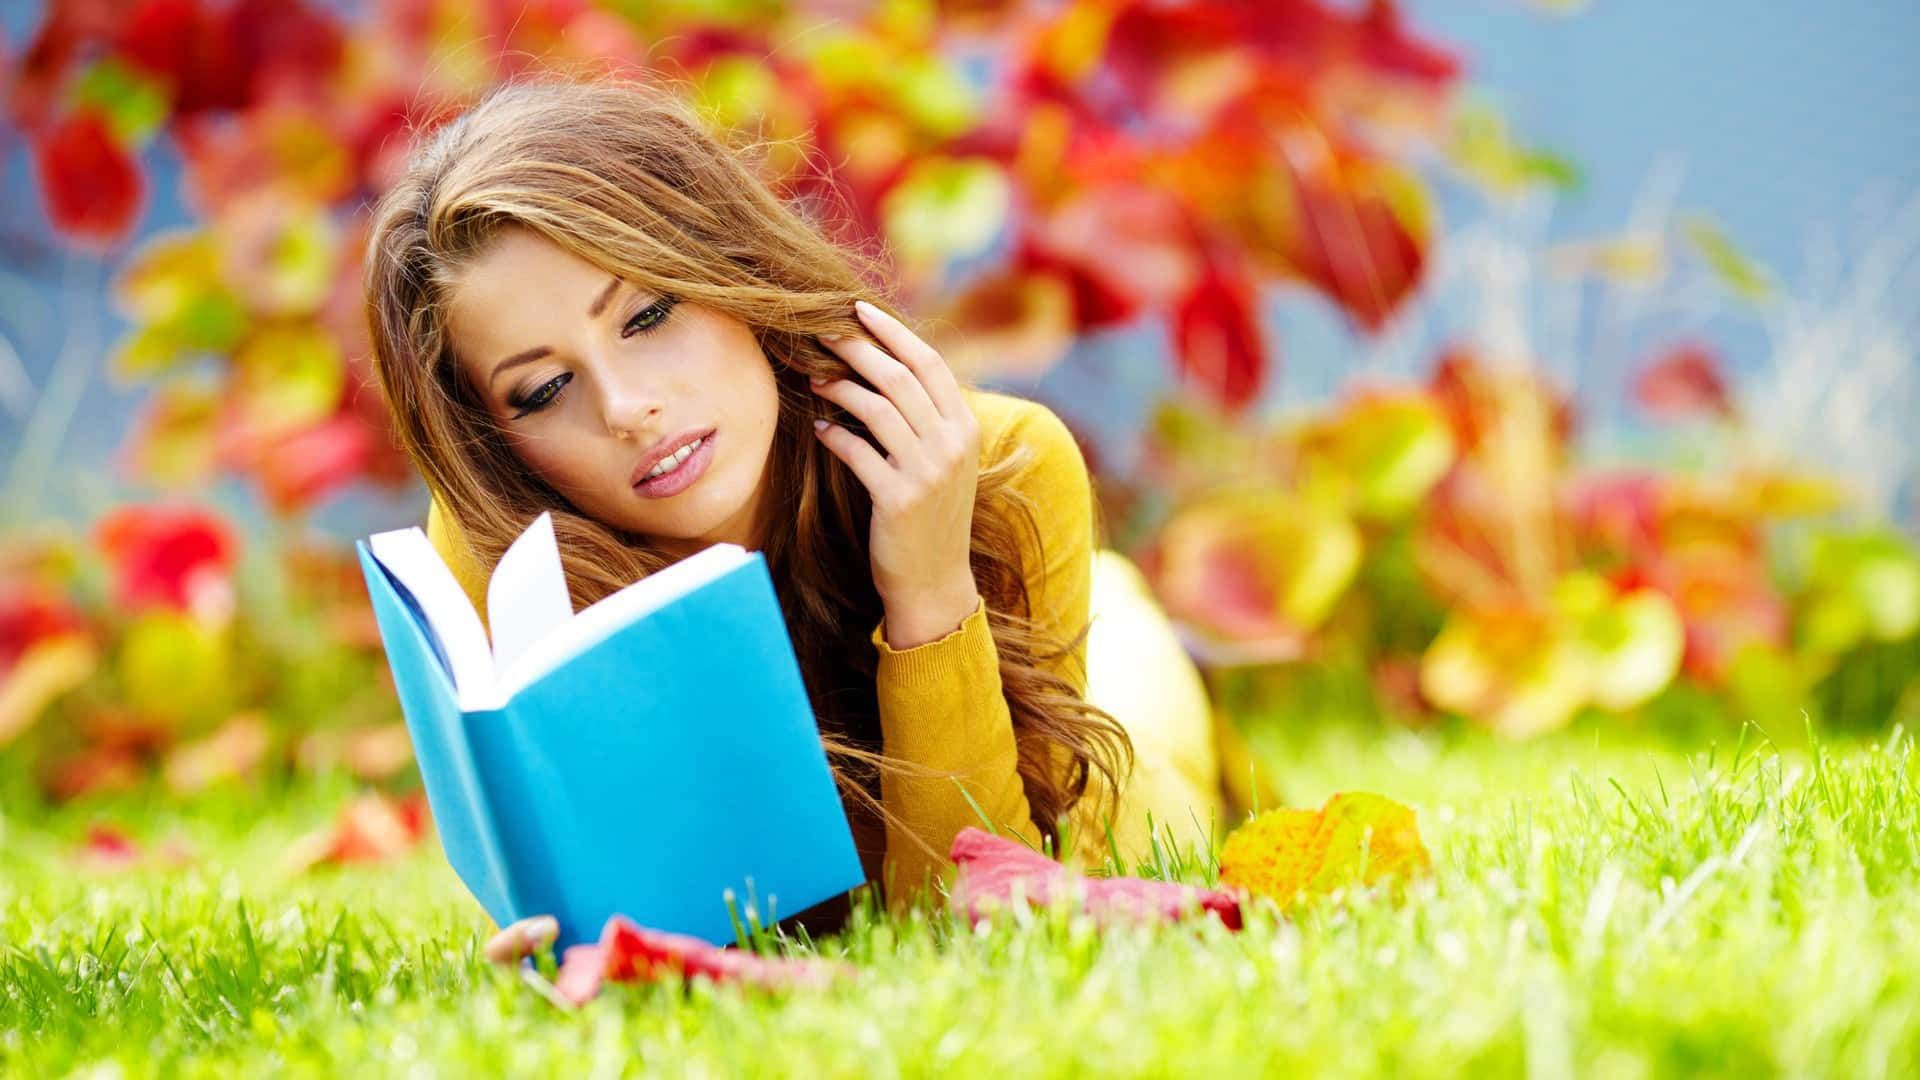 www.GetBg.net_Girls___Beautyful_Girls_The_girl_on_the_grass_reading_a_book_077450_ (1)